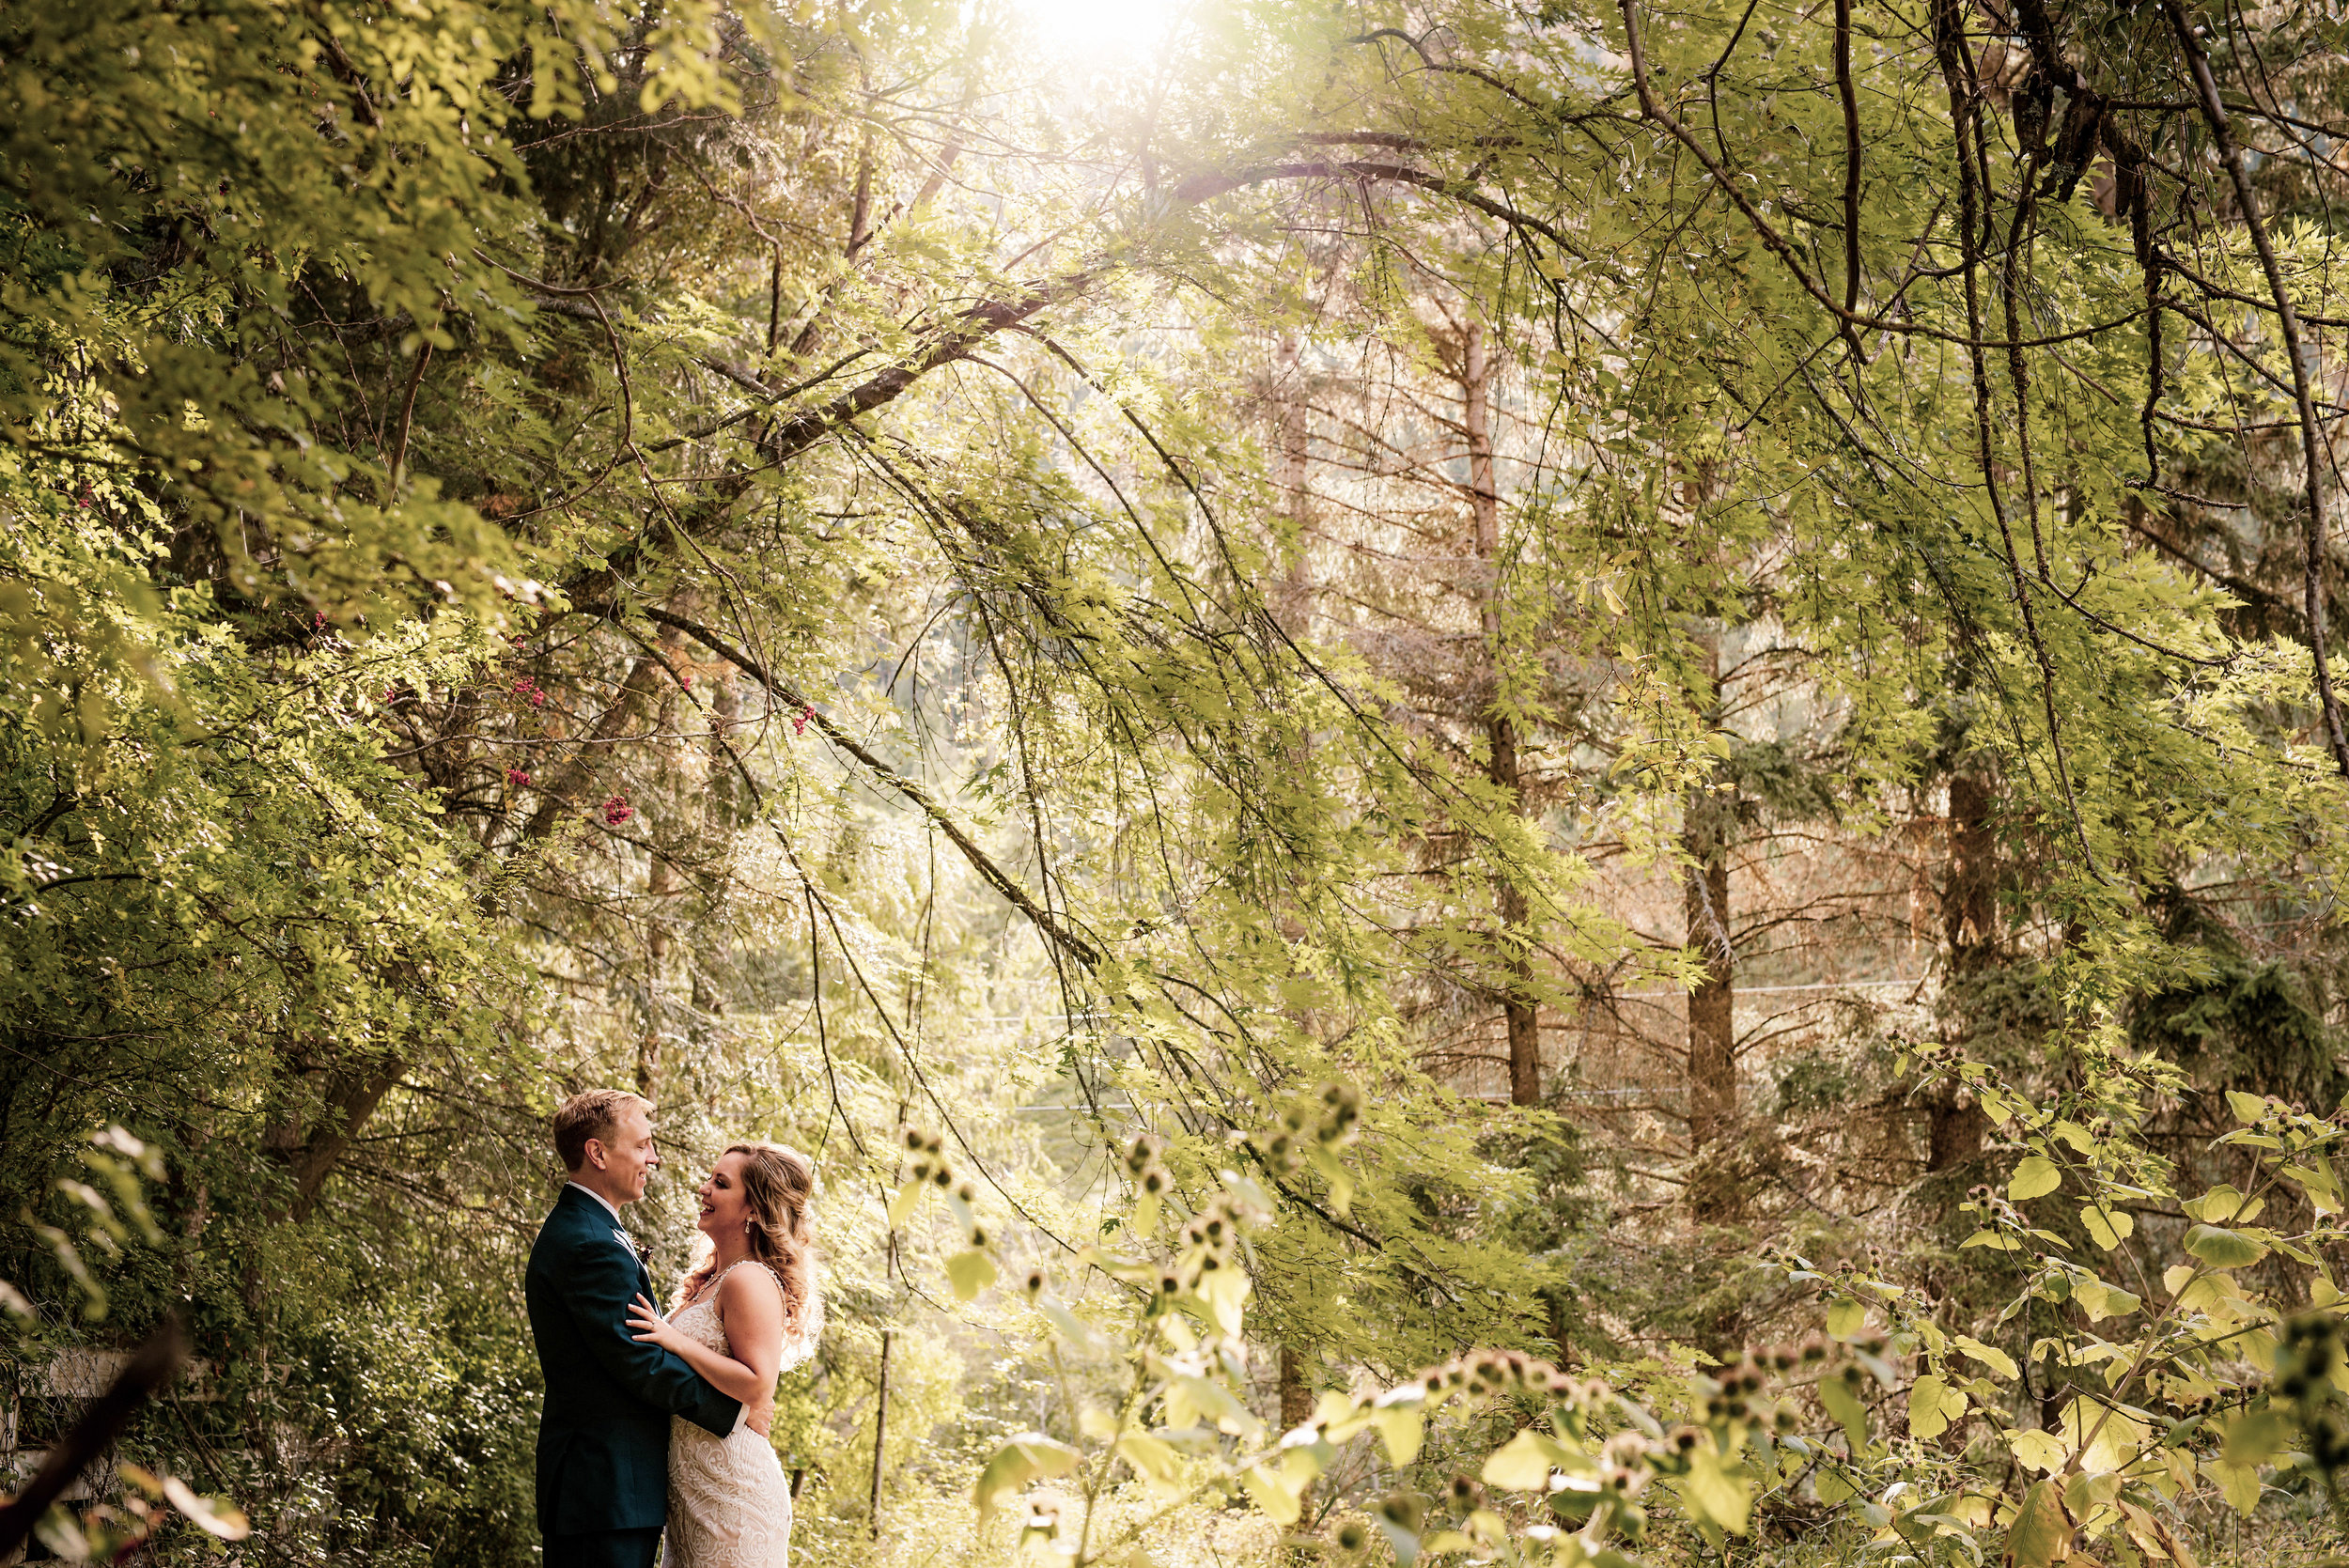 Blank canvas - Create an enchanted forest wedding or a woodsy wedding experience as you like